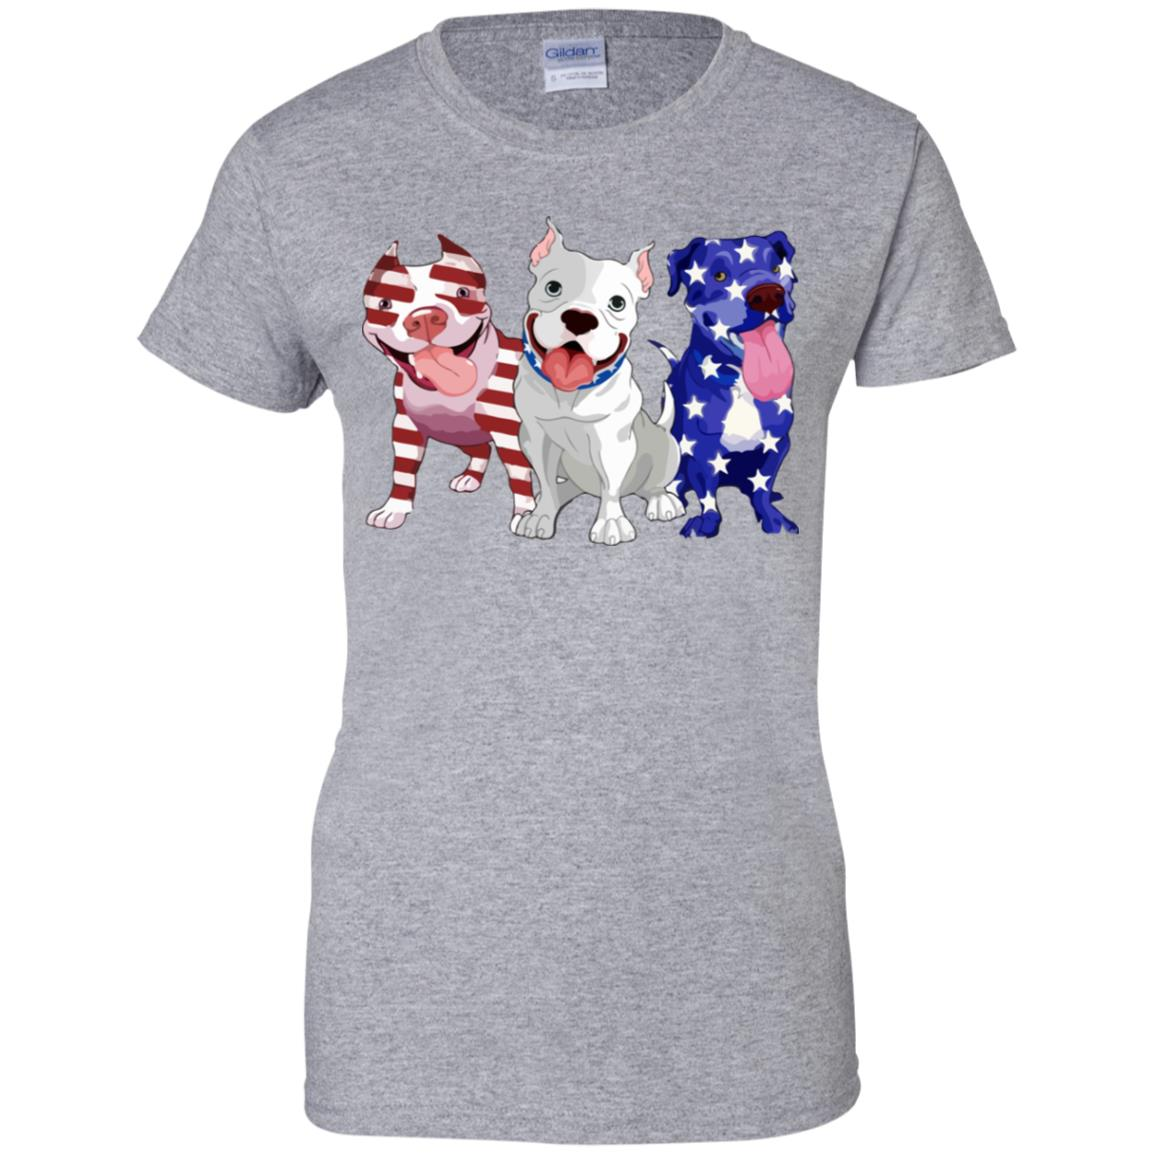 Three Pitbull American flag